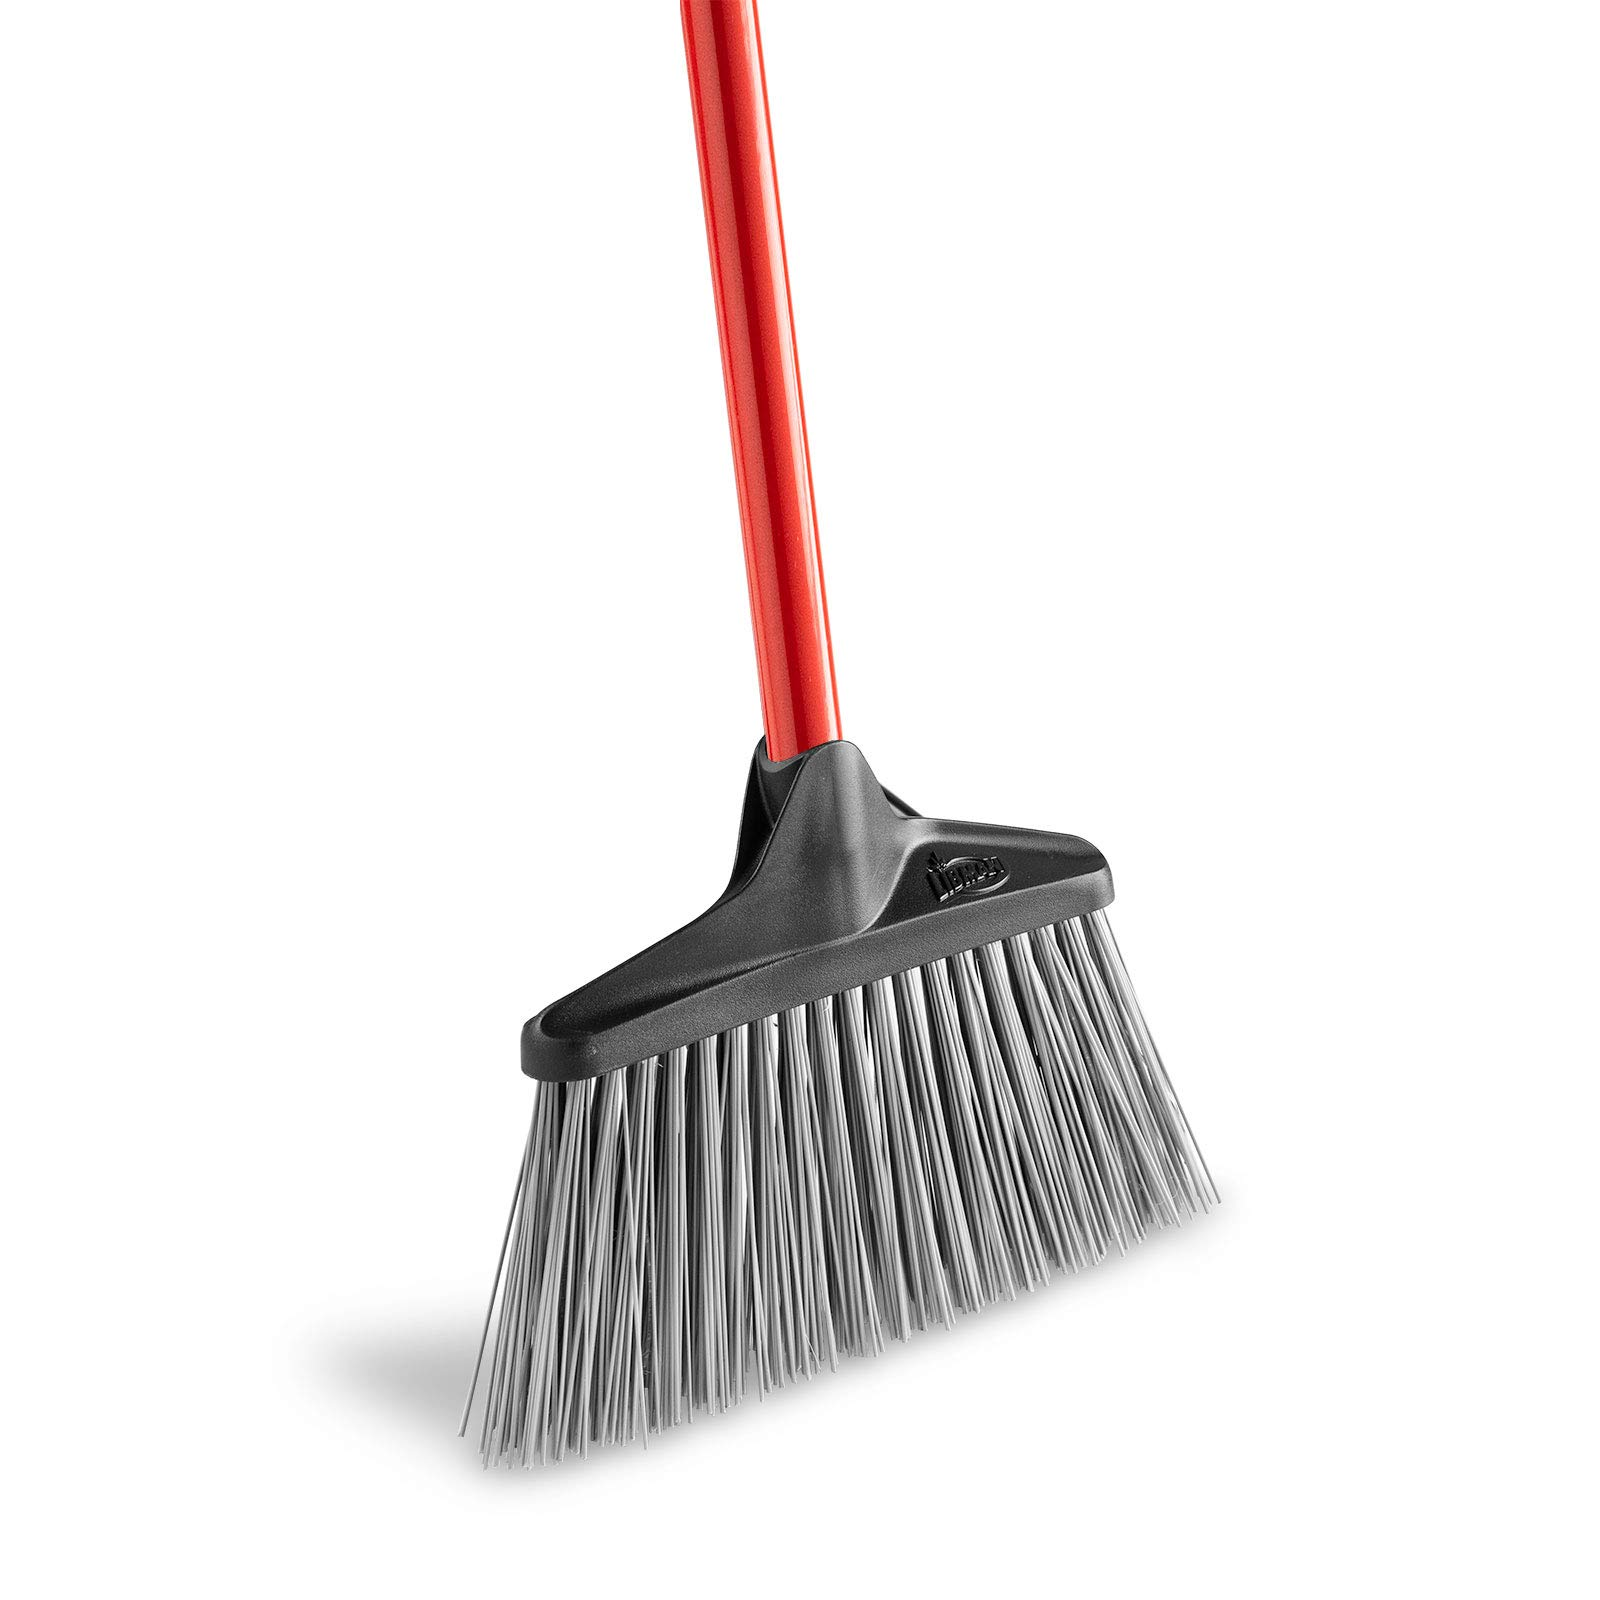 Libman Commercial 1086 Stiff Sweep Lobby Broom, Steel Handle, 38'' Tall x 10'' Wide, Red Handle (Pack of 6) by Libman Commercial